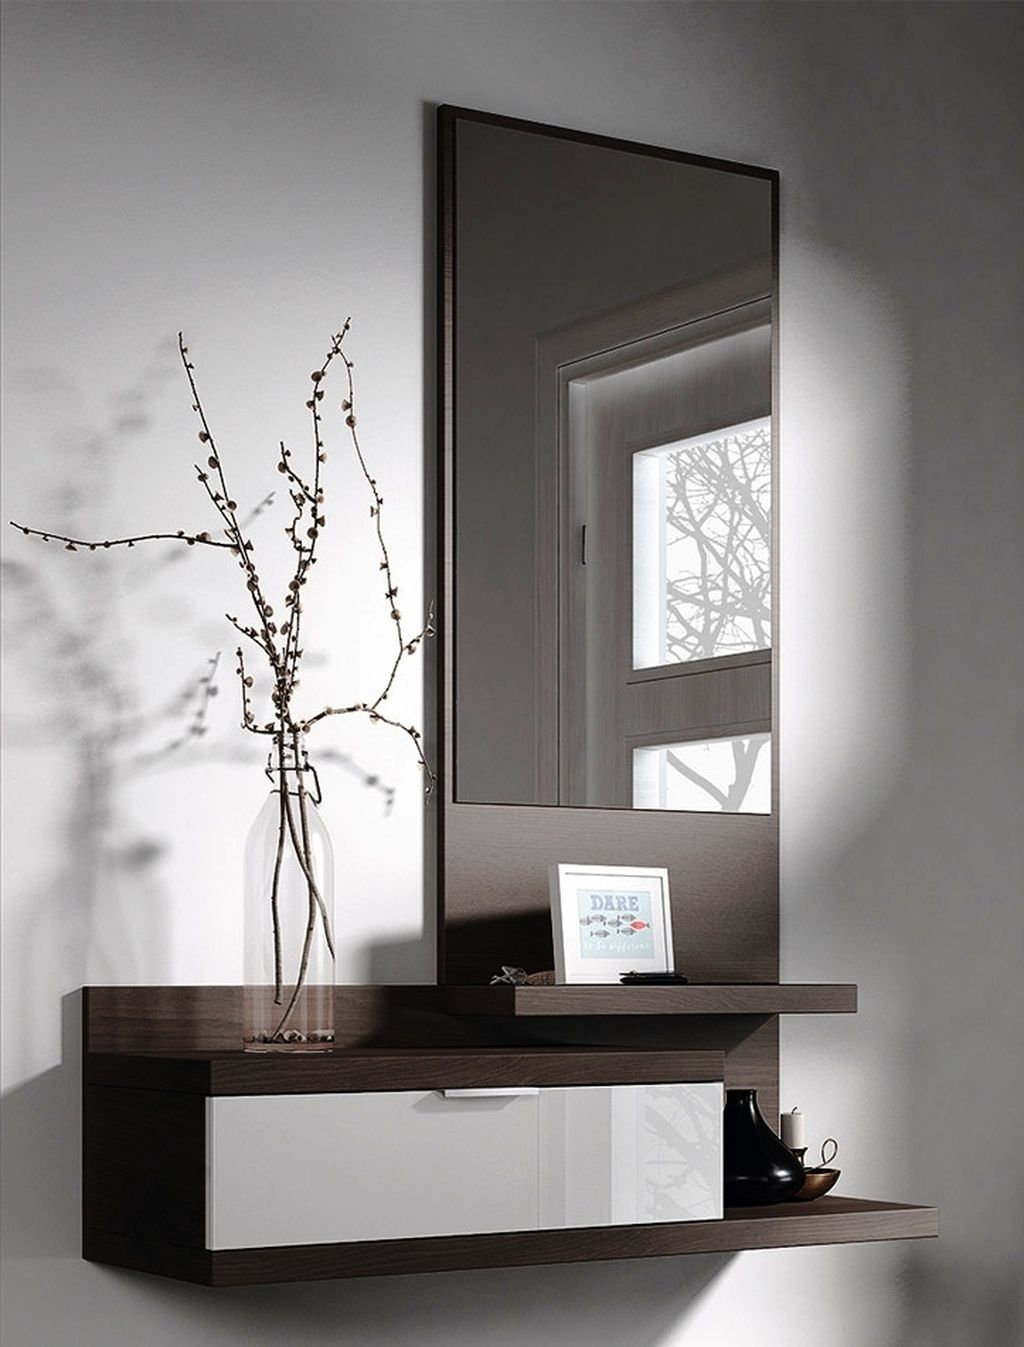 Pin By Hamna Naveed On Tv Wall Design In 2020 Dressing Table